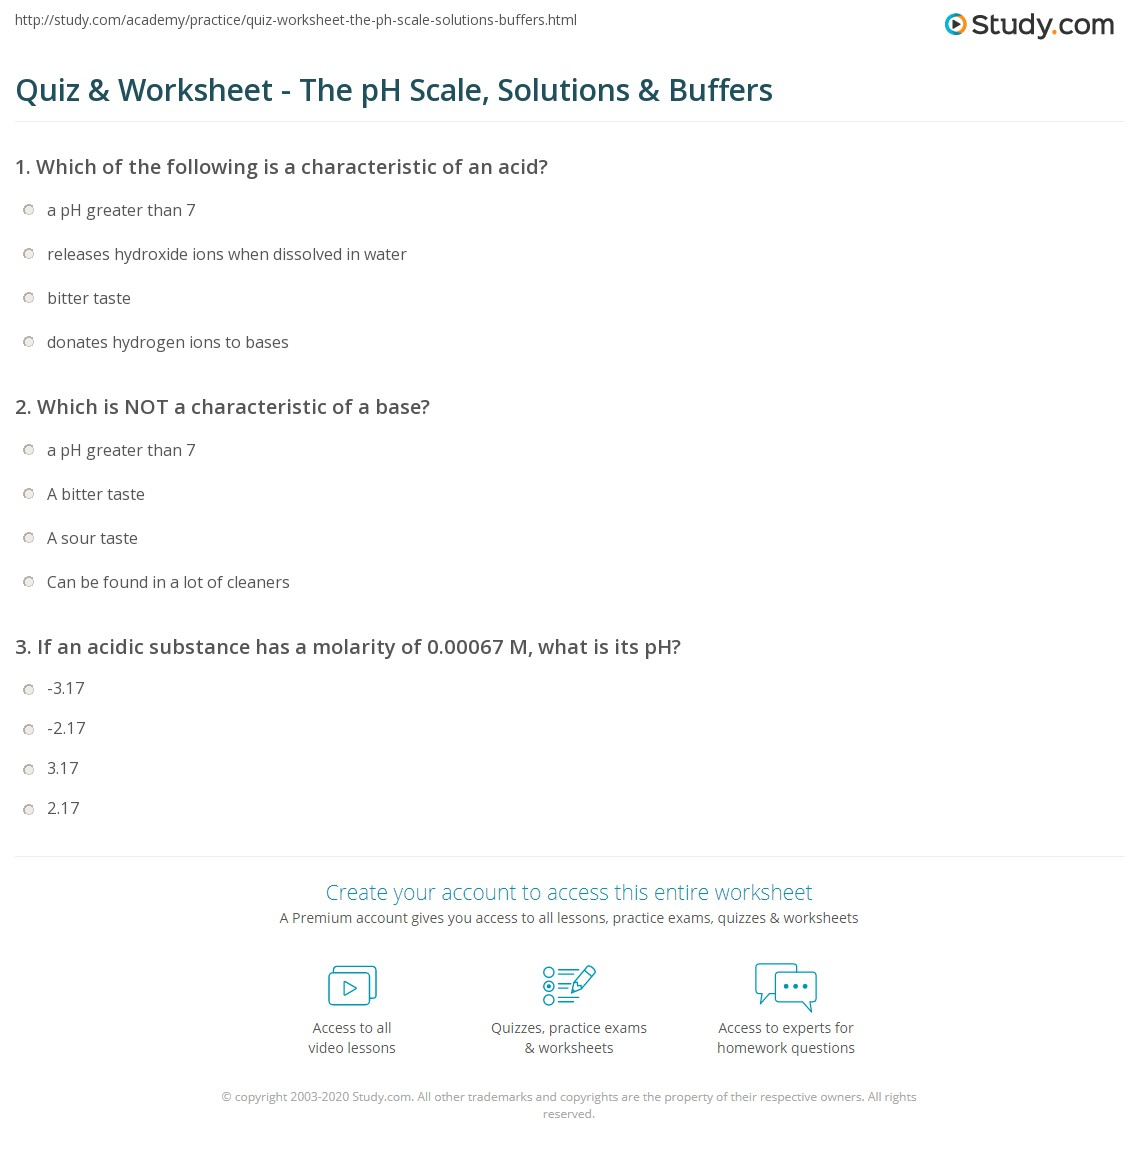 Quiz & Worksheet - The pH Scale, Solutions & Buffers | Study.com